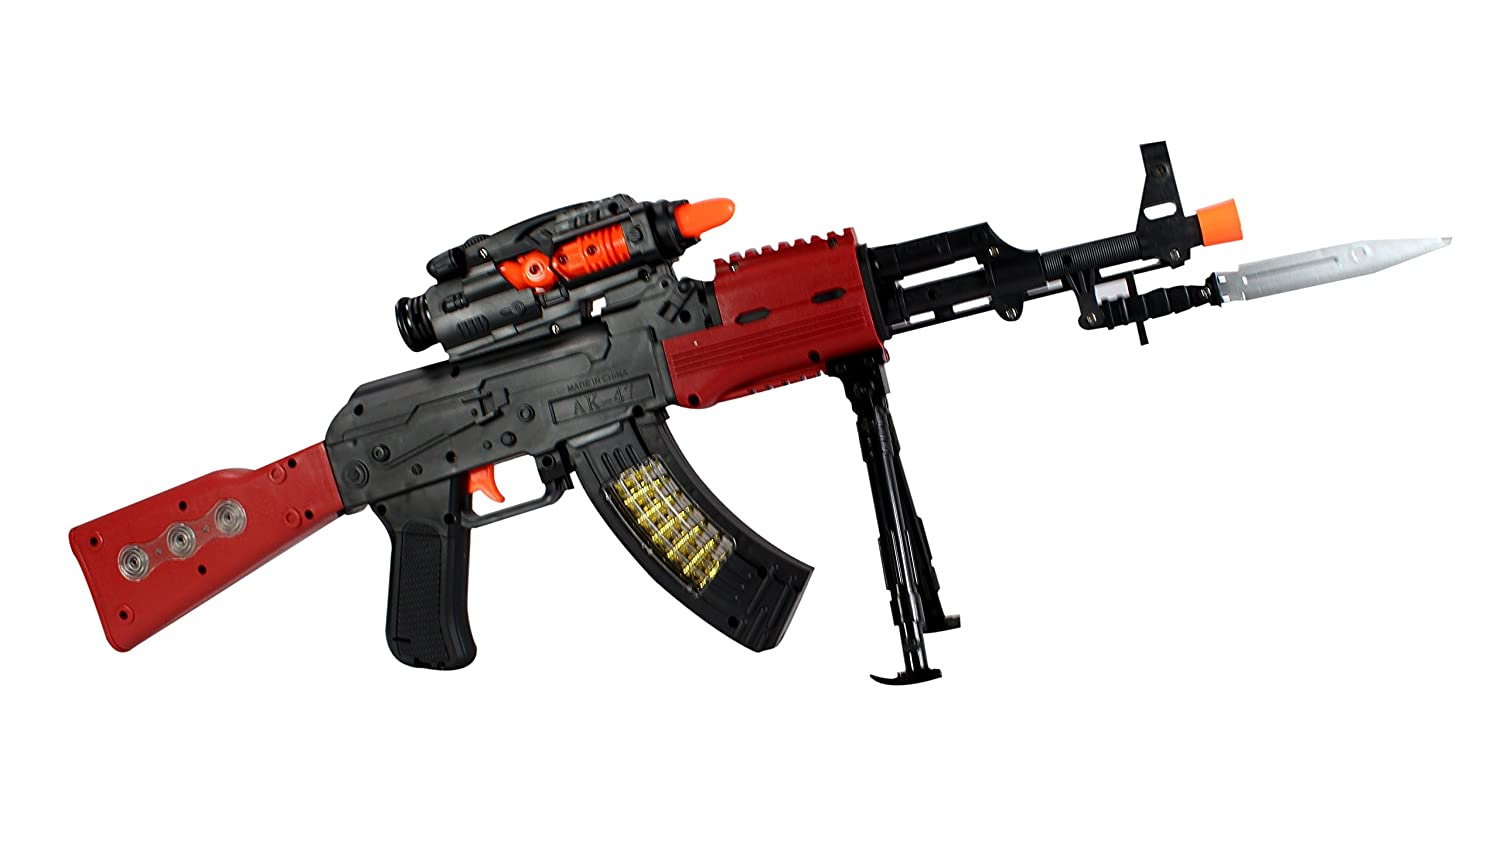 Amazon: Planet Of Toys AK-47 Flash Gun @ Rs.499/- (71% OFF)